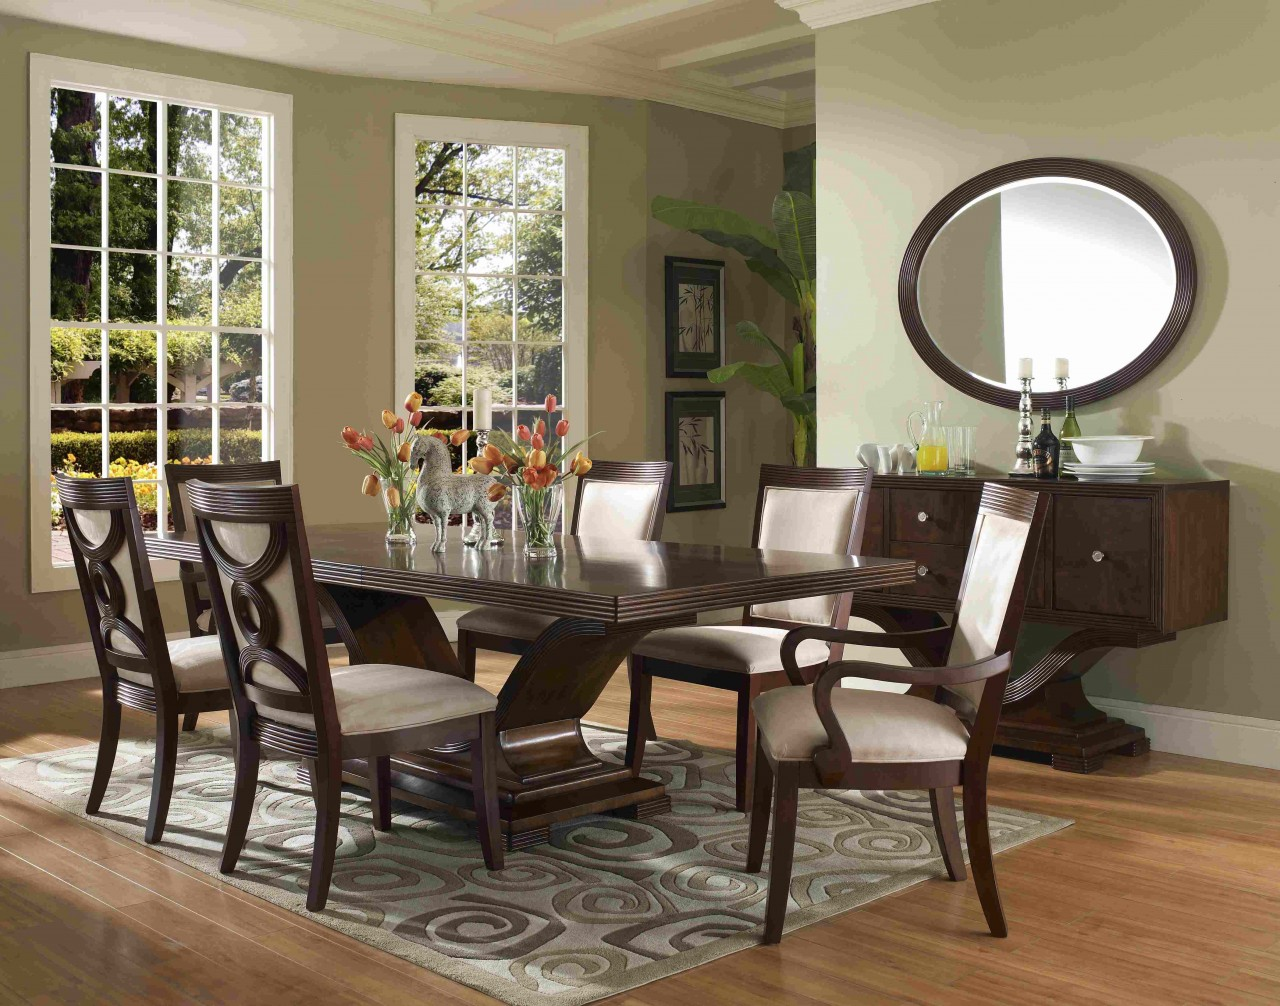 formal dining room pictures photo - 1